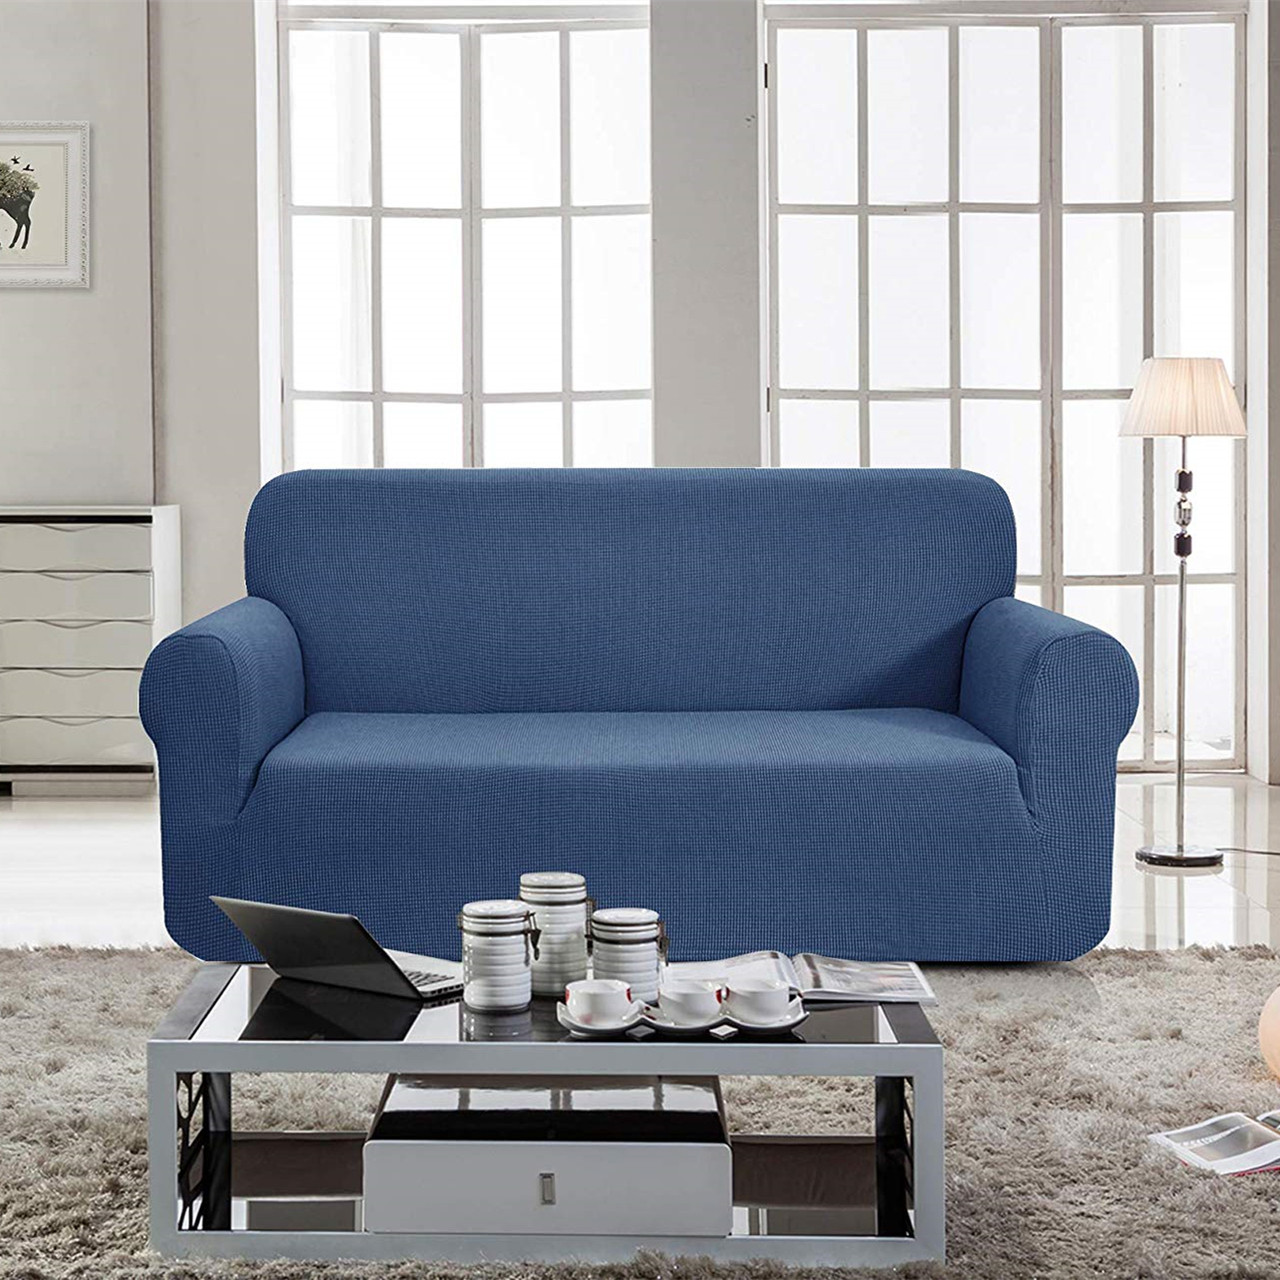 Jacquard Polyester Spandex Fabric Box Cushion Loveseat Slipcovers Denim Blue Enova Home